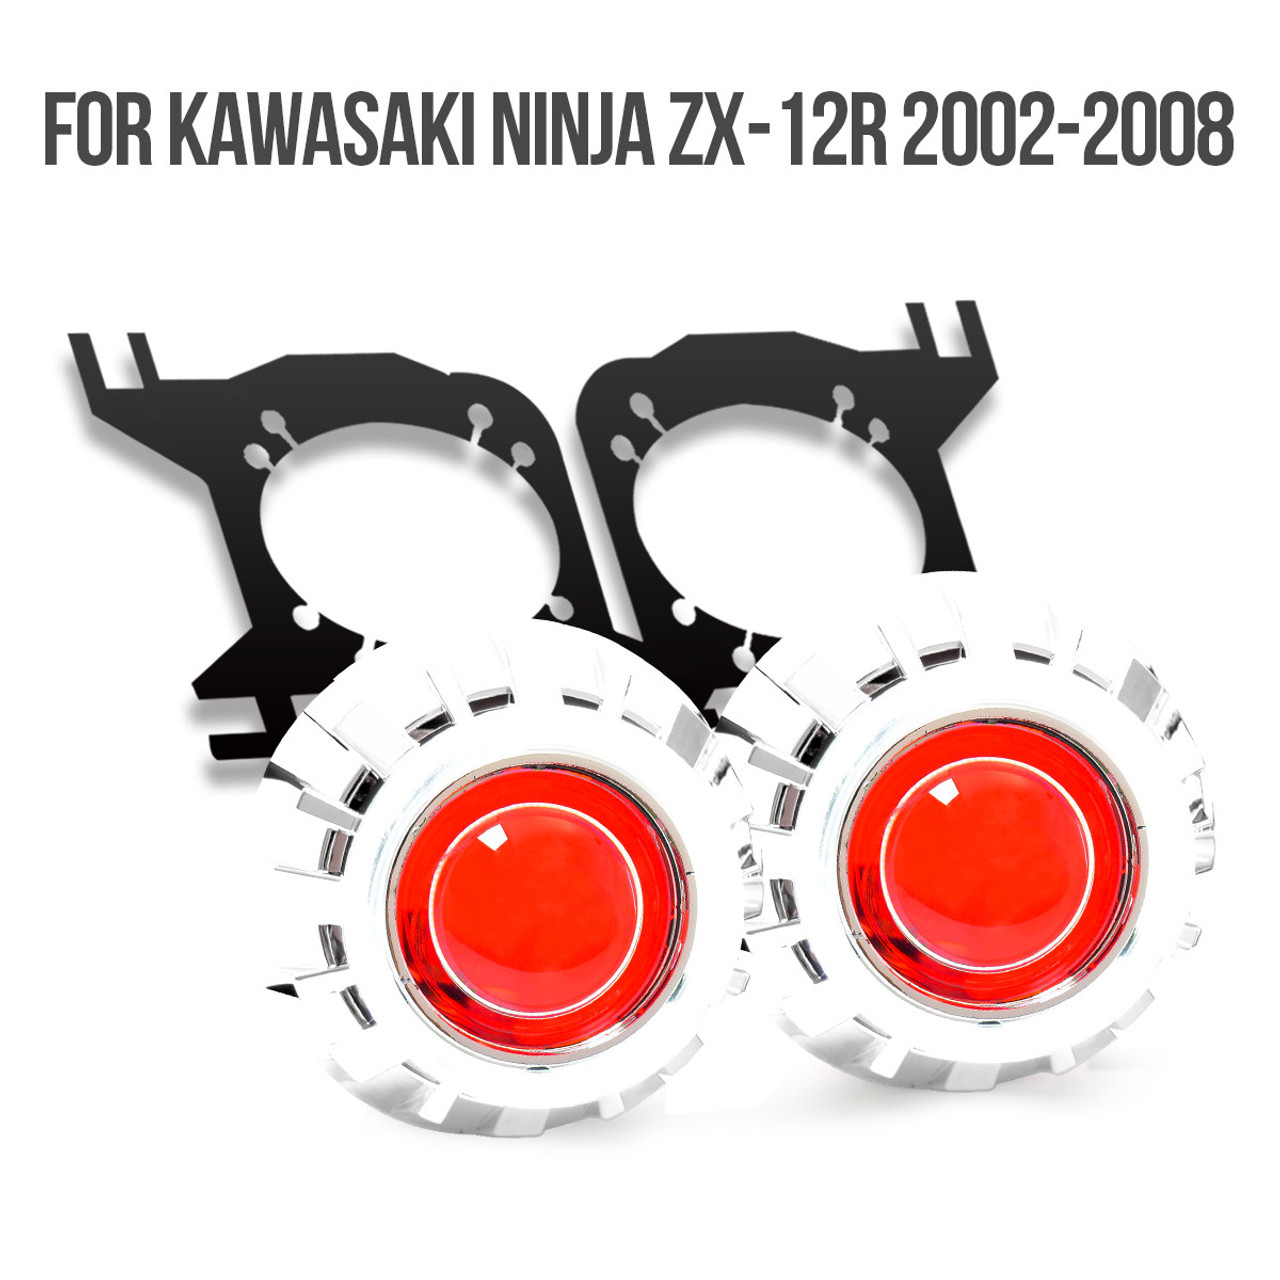 medium resolution of 2002 2003 2004 2005 2006 2007 2008 kawasaki ninja zx12r projector kit